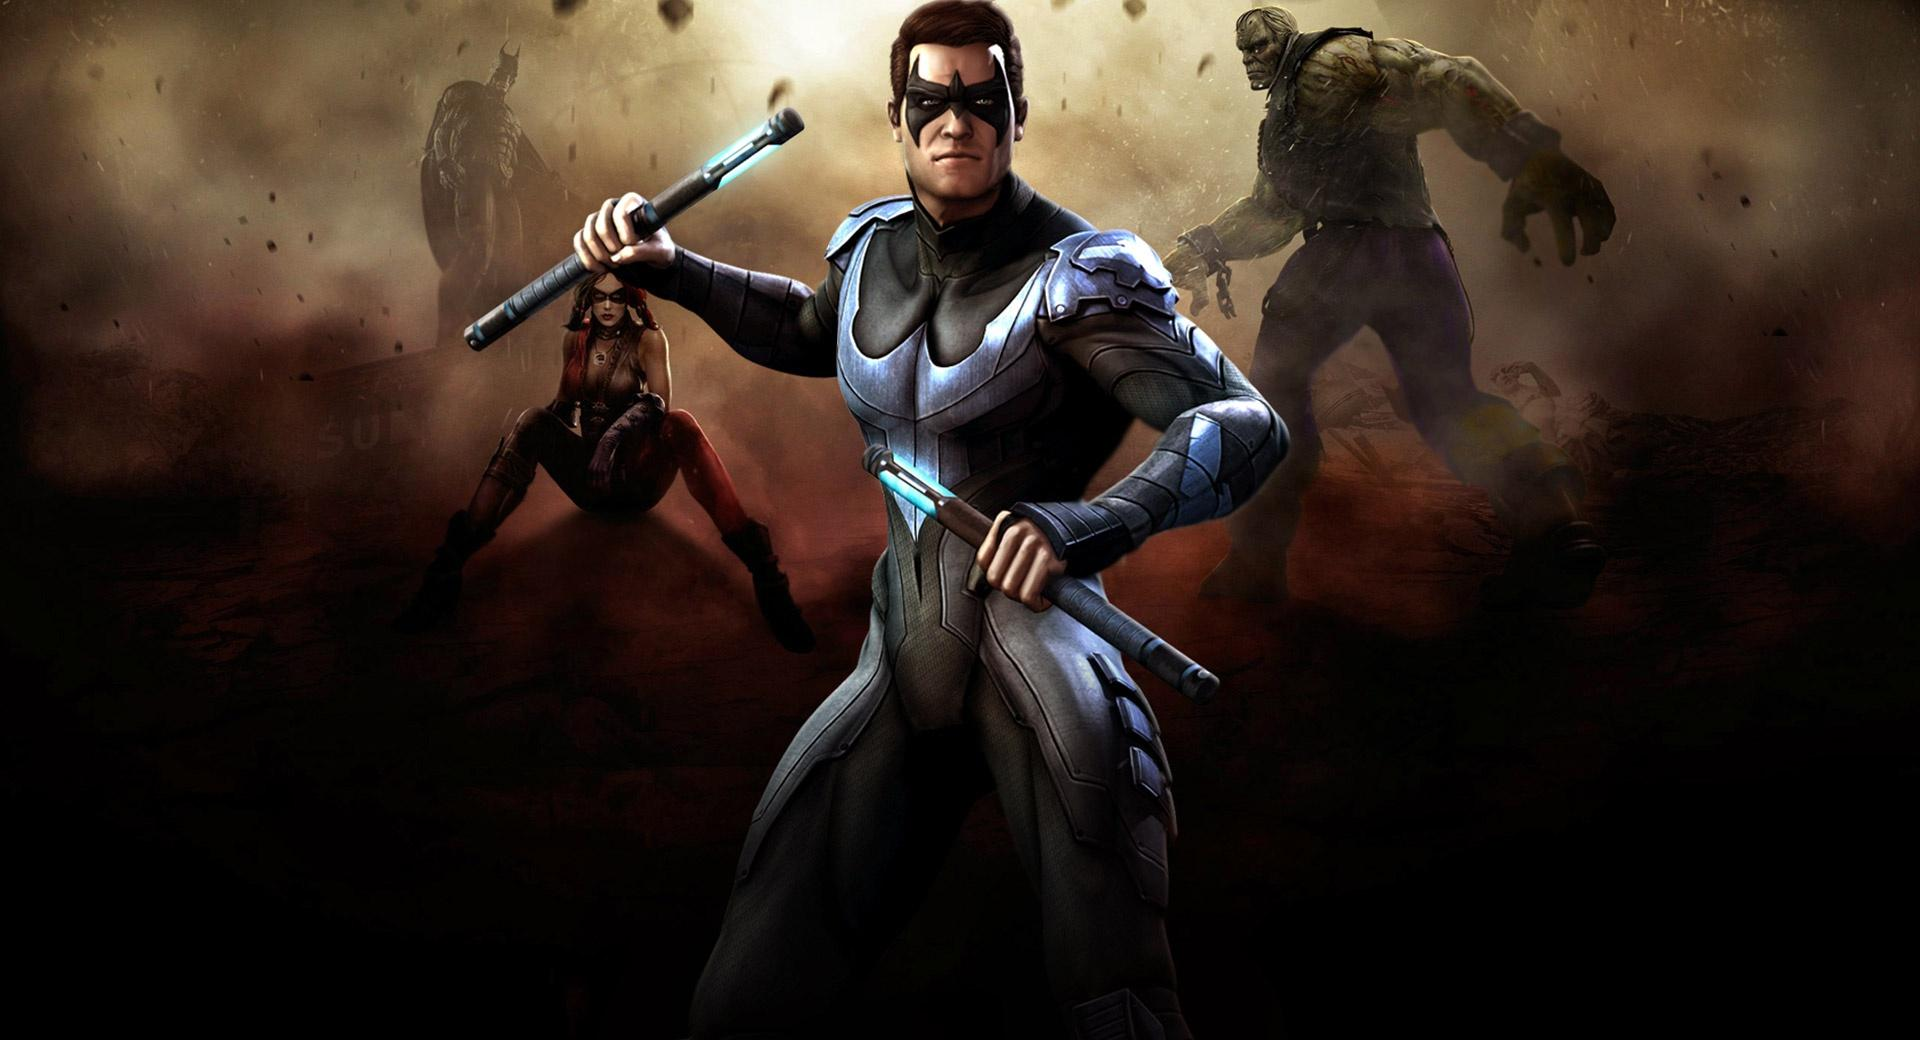 Injustice Gods Among Us - Nightwing wallpapers HD quality